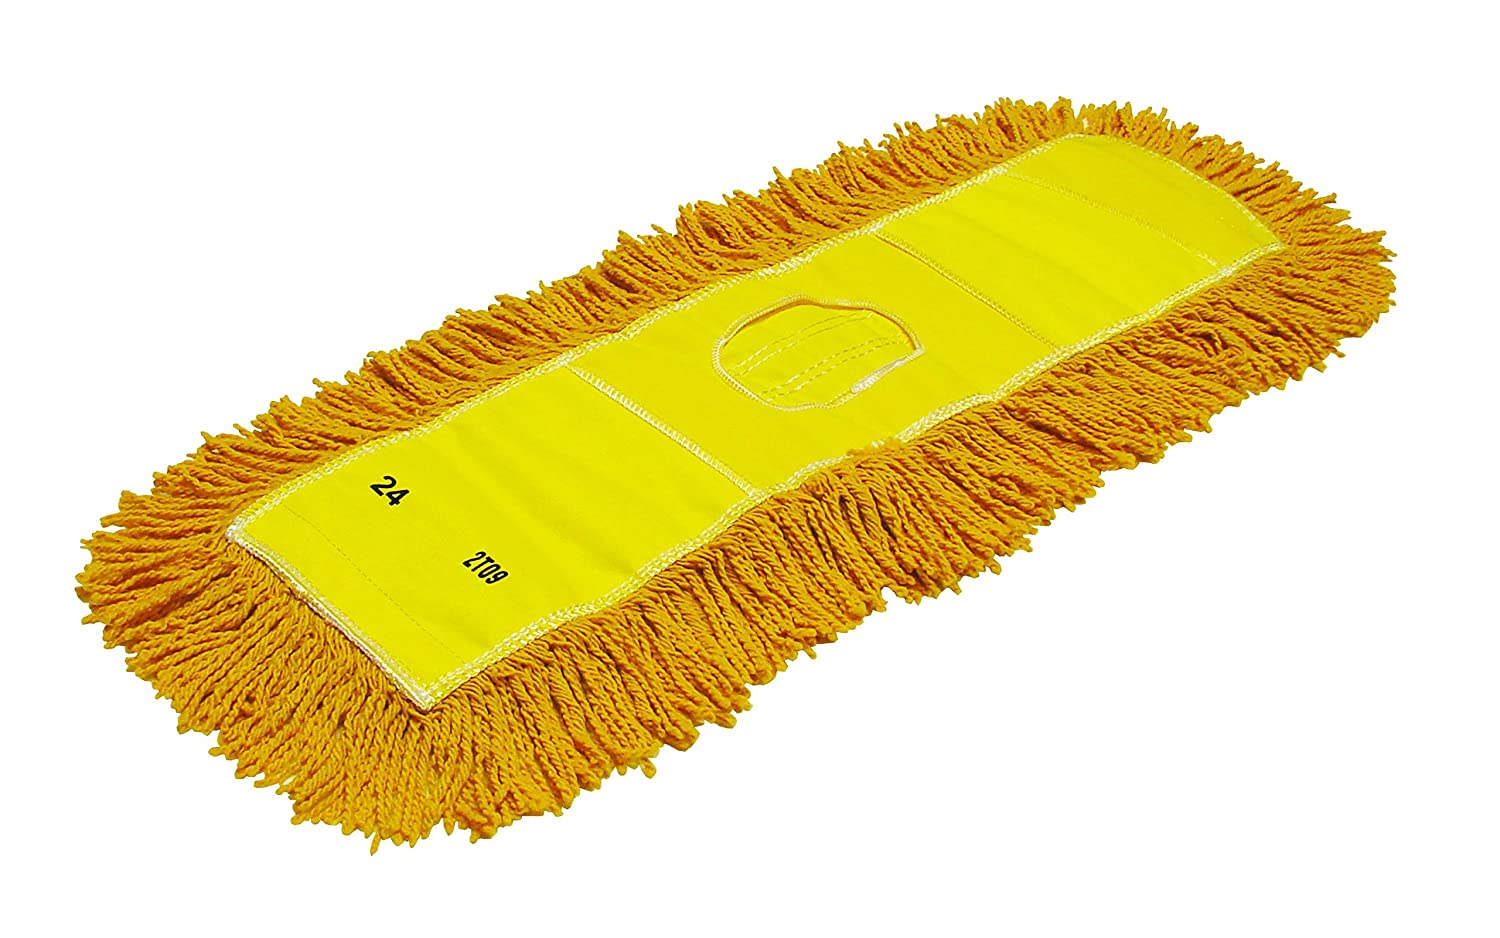 Pack of 6 Golden Star ACB48SITYY Synergy Dust Mop Head with Combination Style Backing